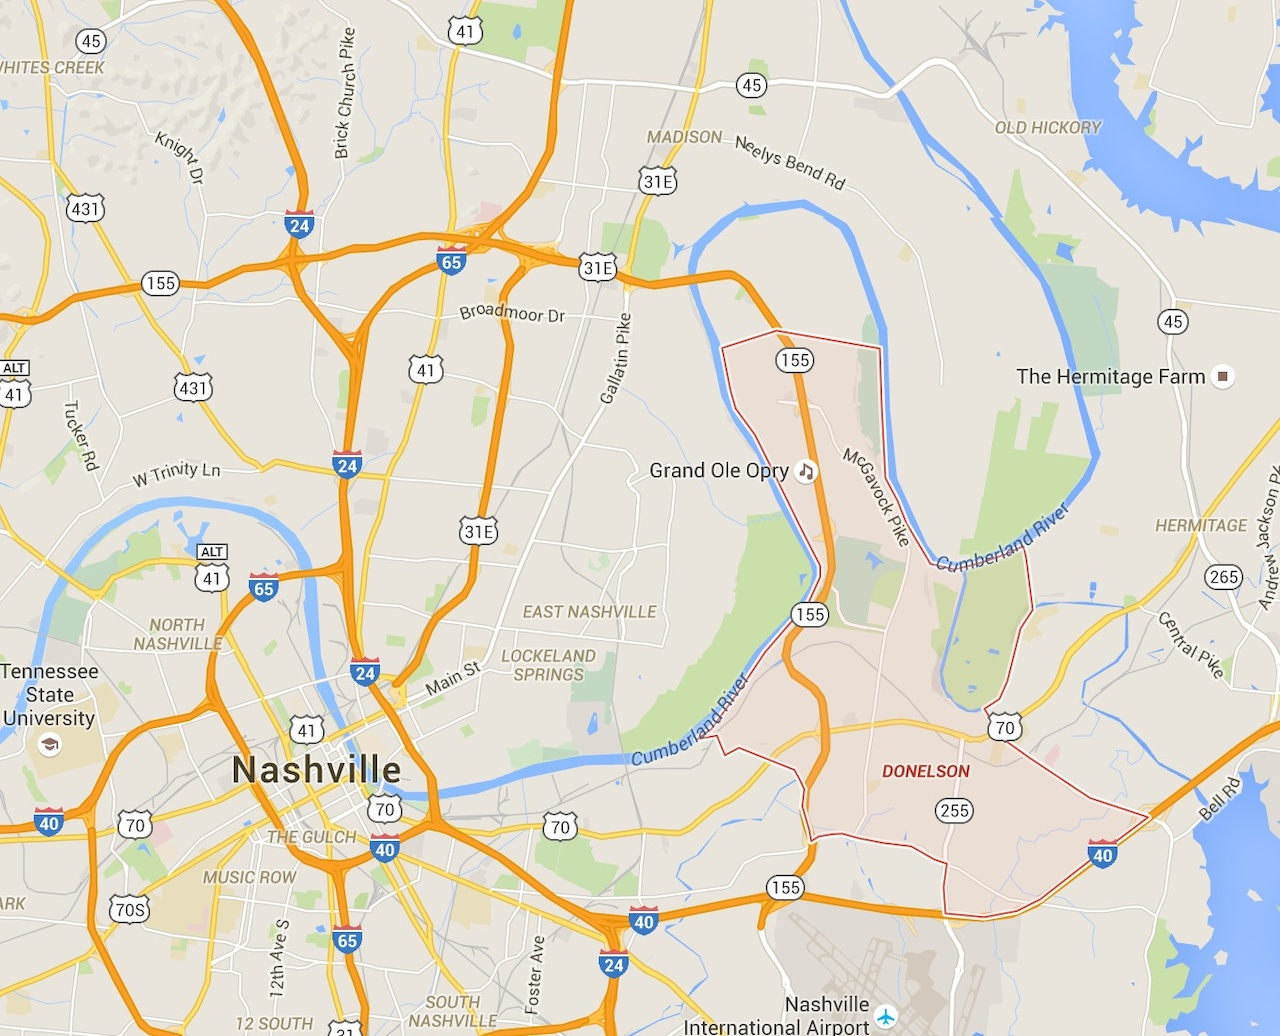 Did you know Donelson cover all of this area? Find out more about this growing region